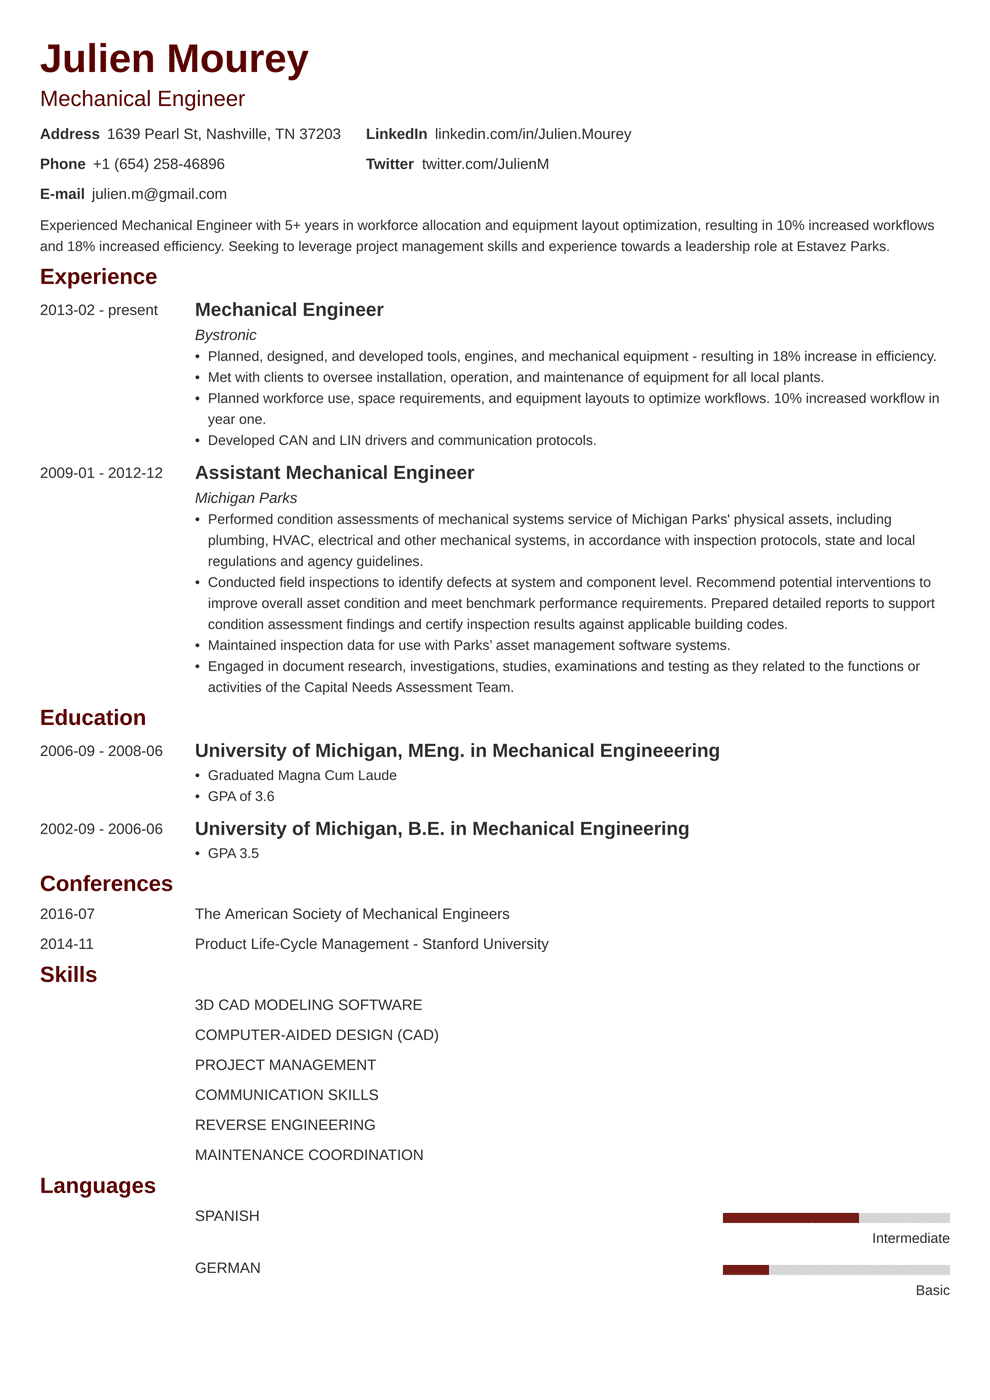 Mechanical Engineering Resume Sample & Guide [20 Examples]